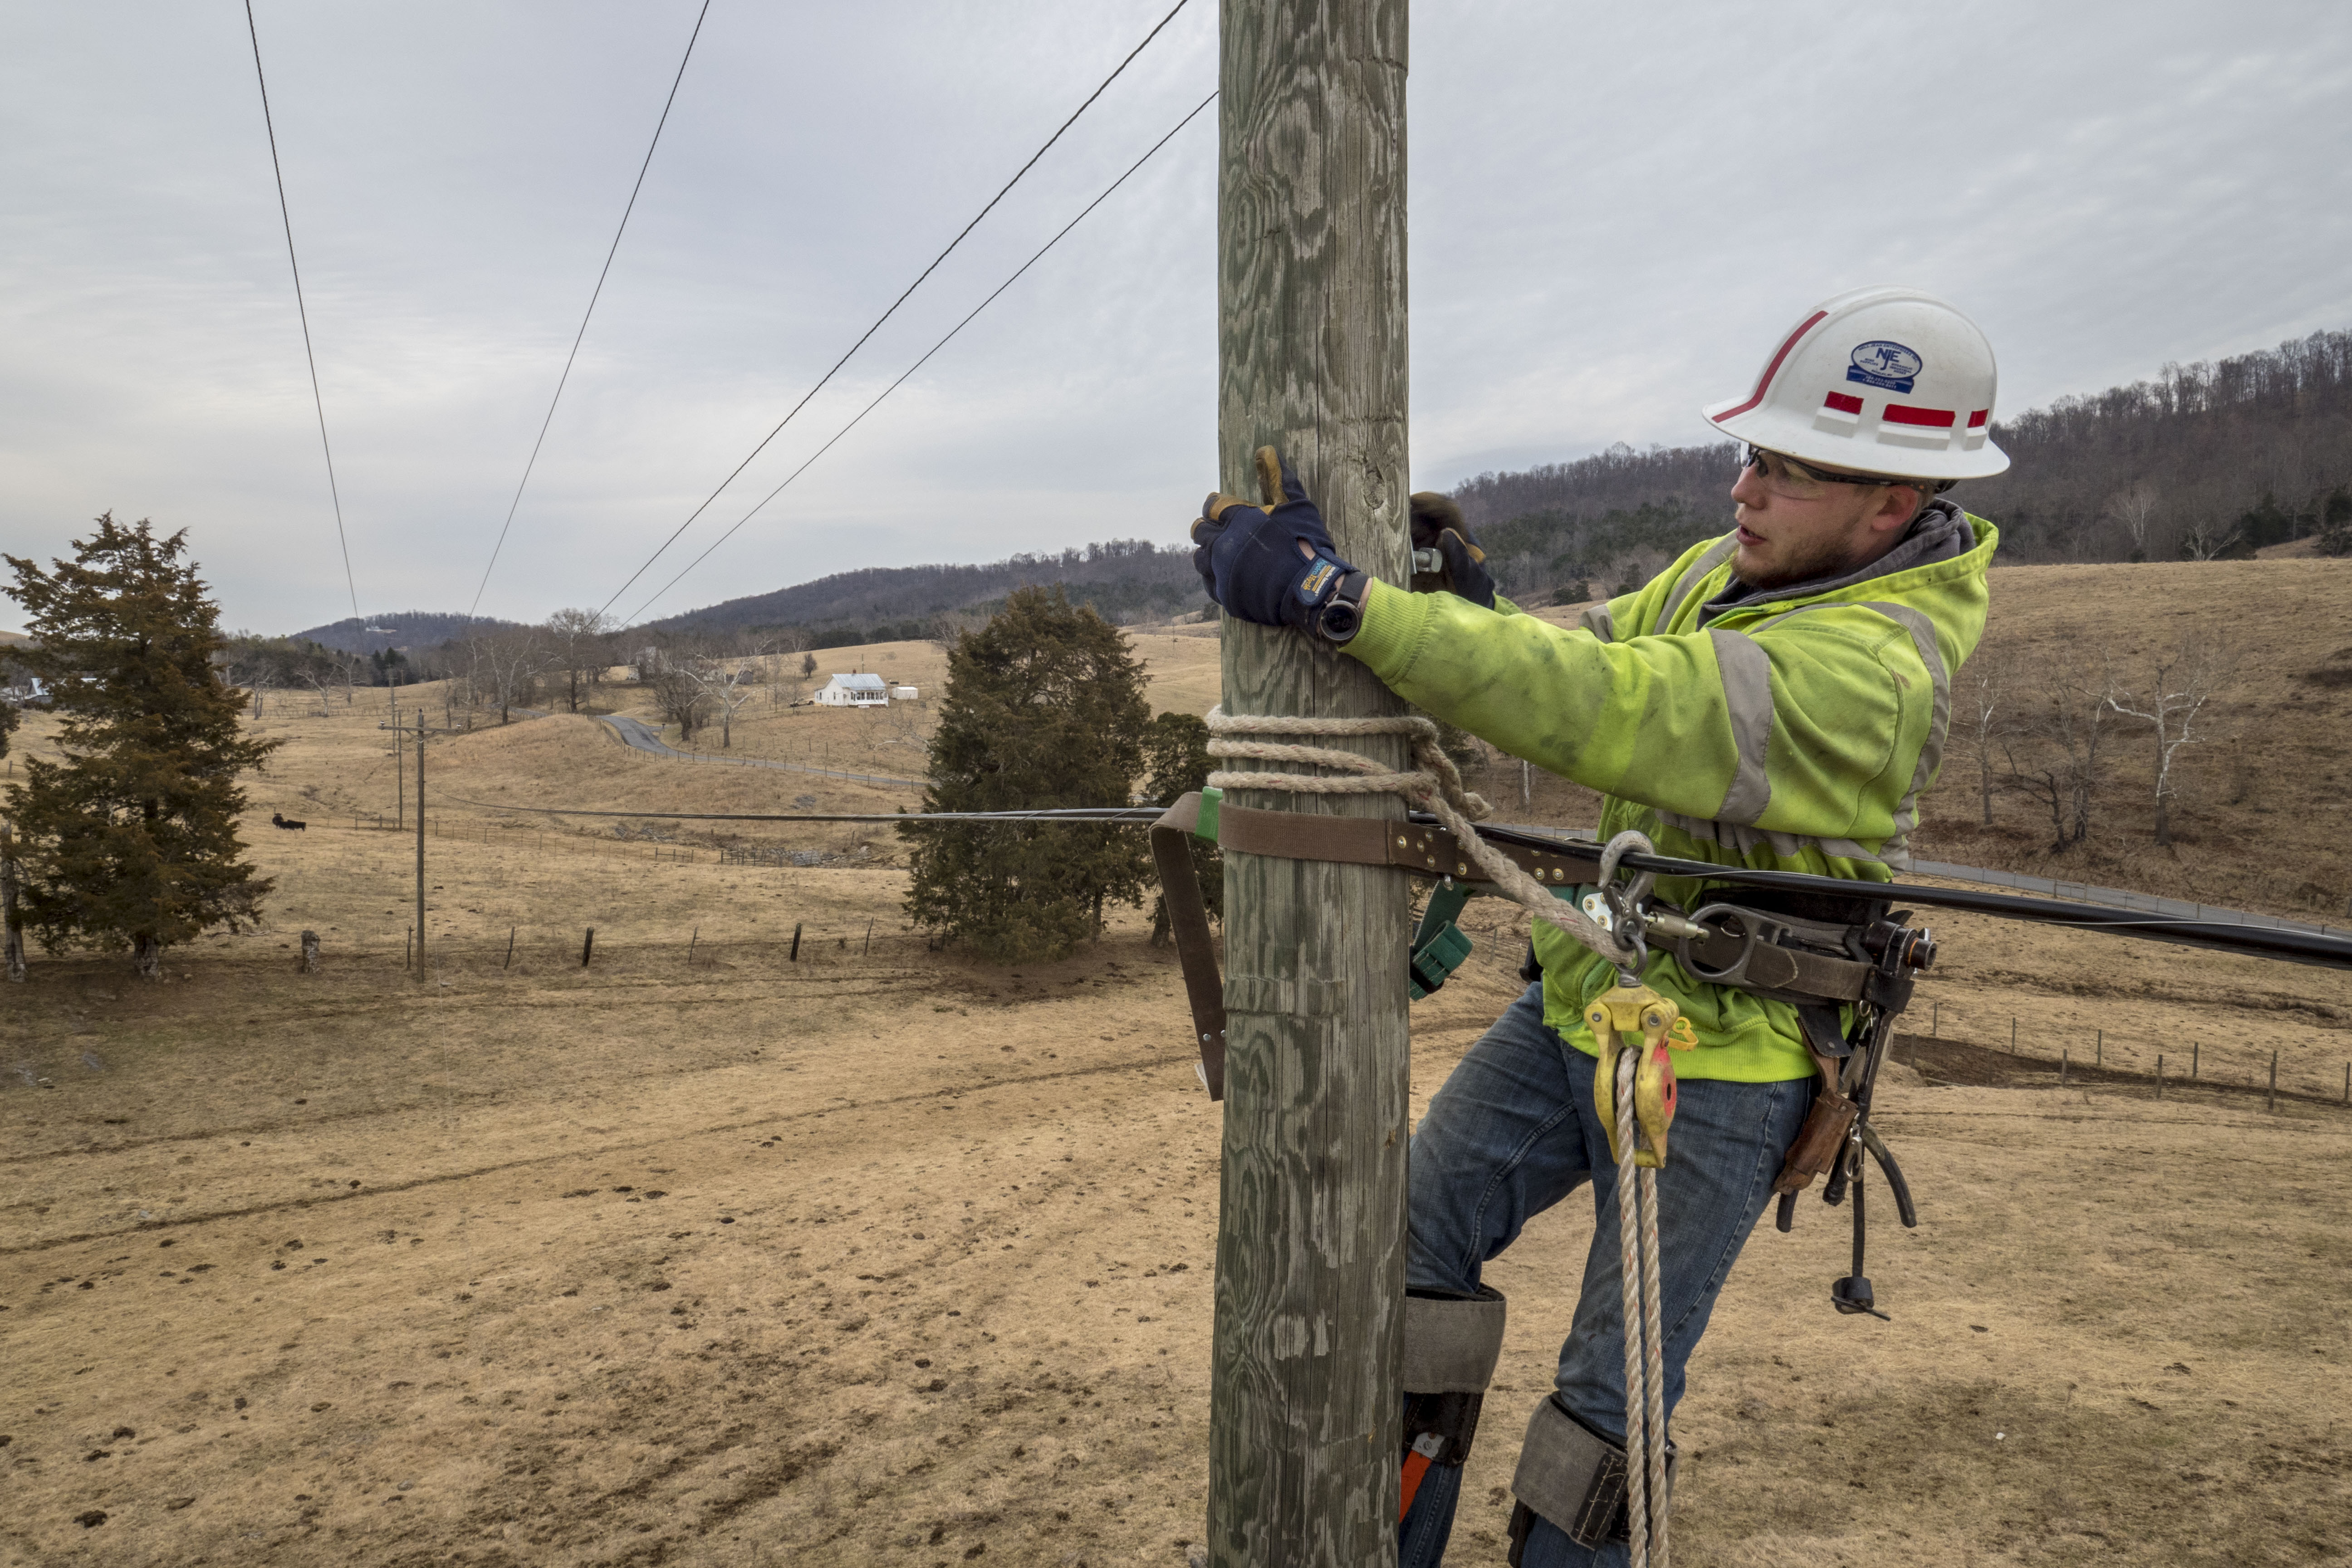 Electric Cooperative leads the way in the Lexington, Va. area installing fiber optic cables to the existing electrical grid, which will bring dependable high-speed